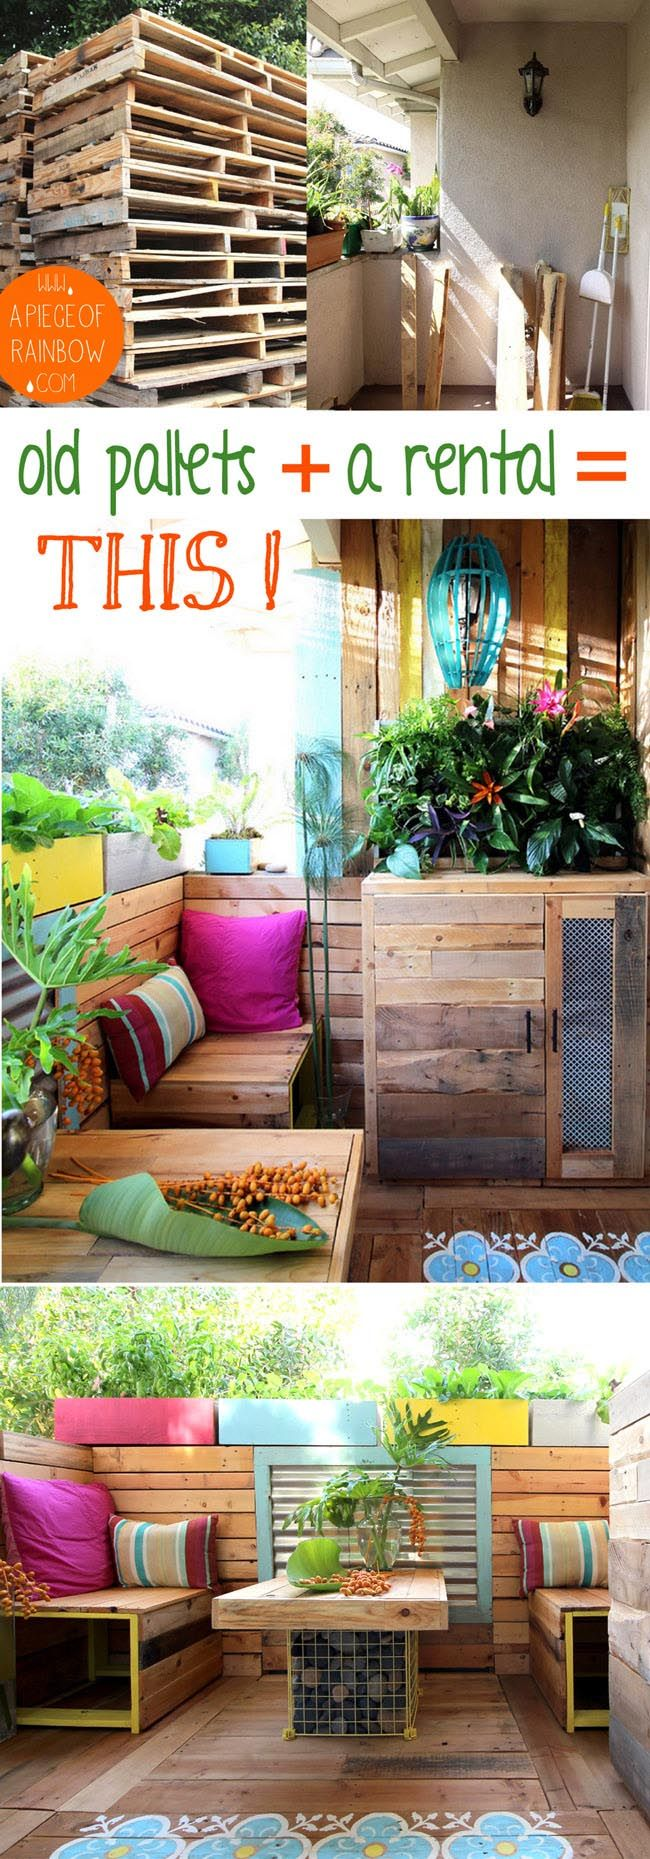 Great Build A Stunning Tropical Outdoor Room With Pallets  A Renters Remodel! | A  Piece